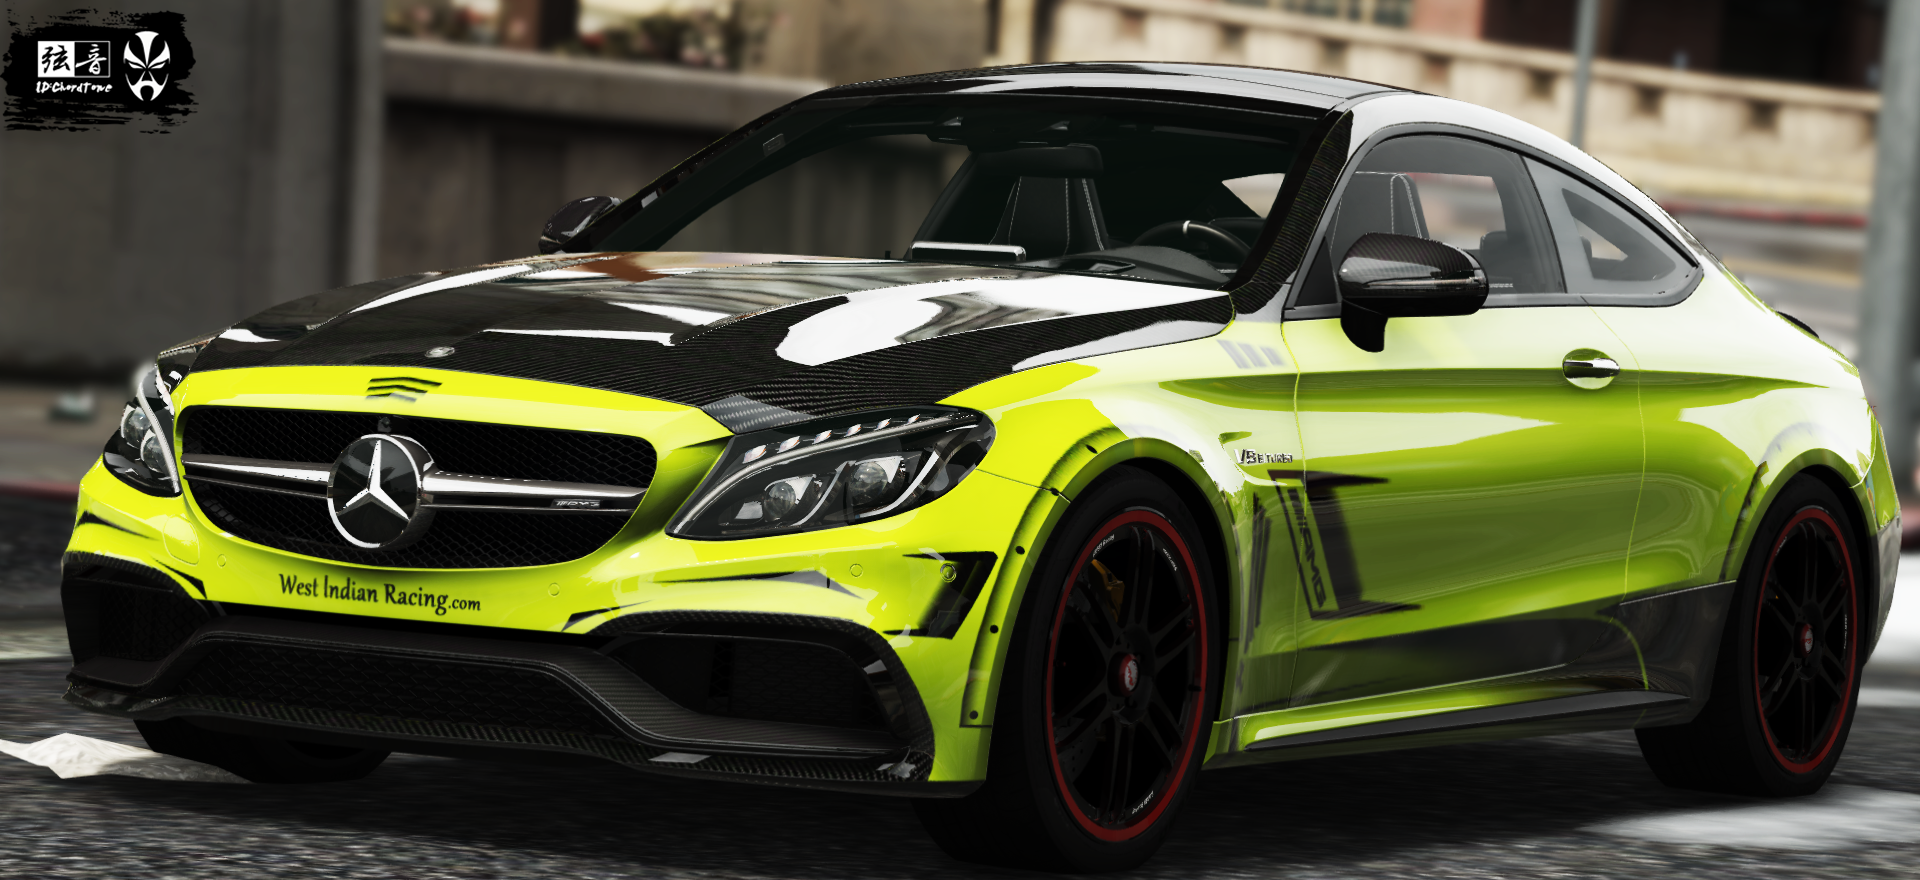 2016 Mercedes Benz Amg C63 S Uniform(reference From Fh3